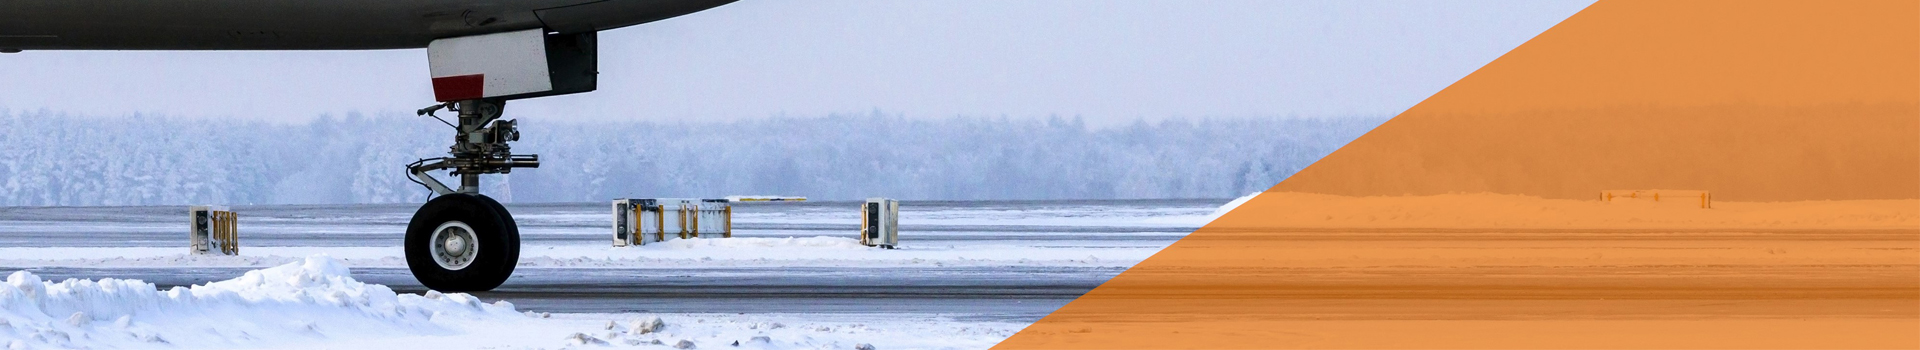 slider_deicing_1